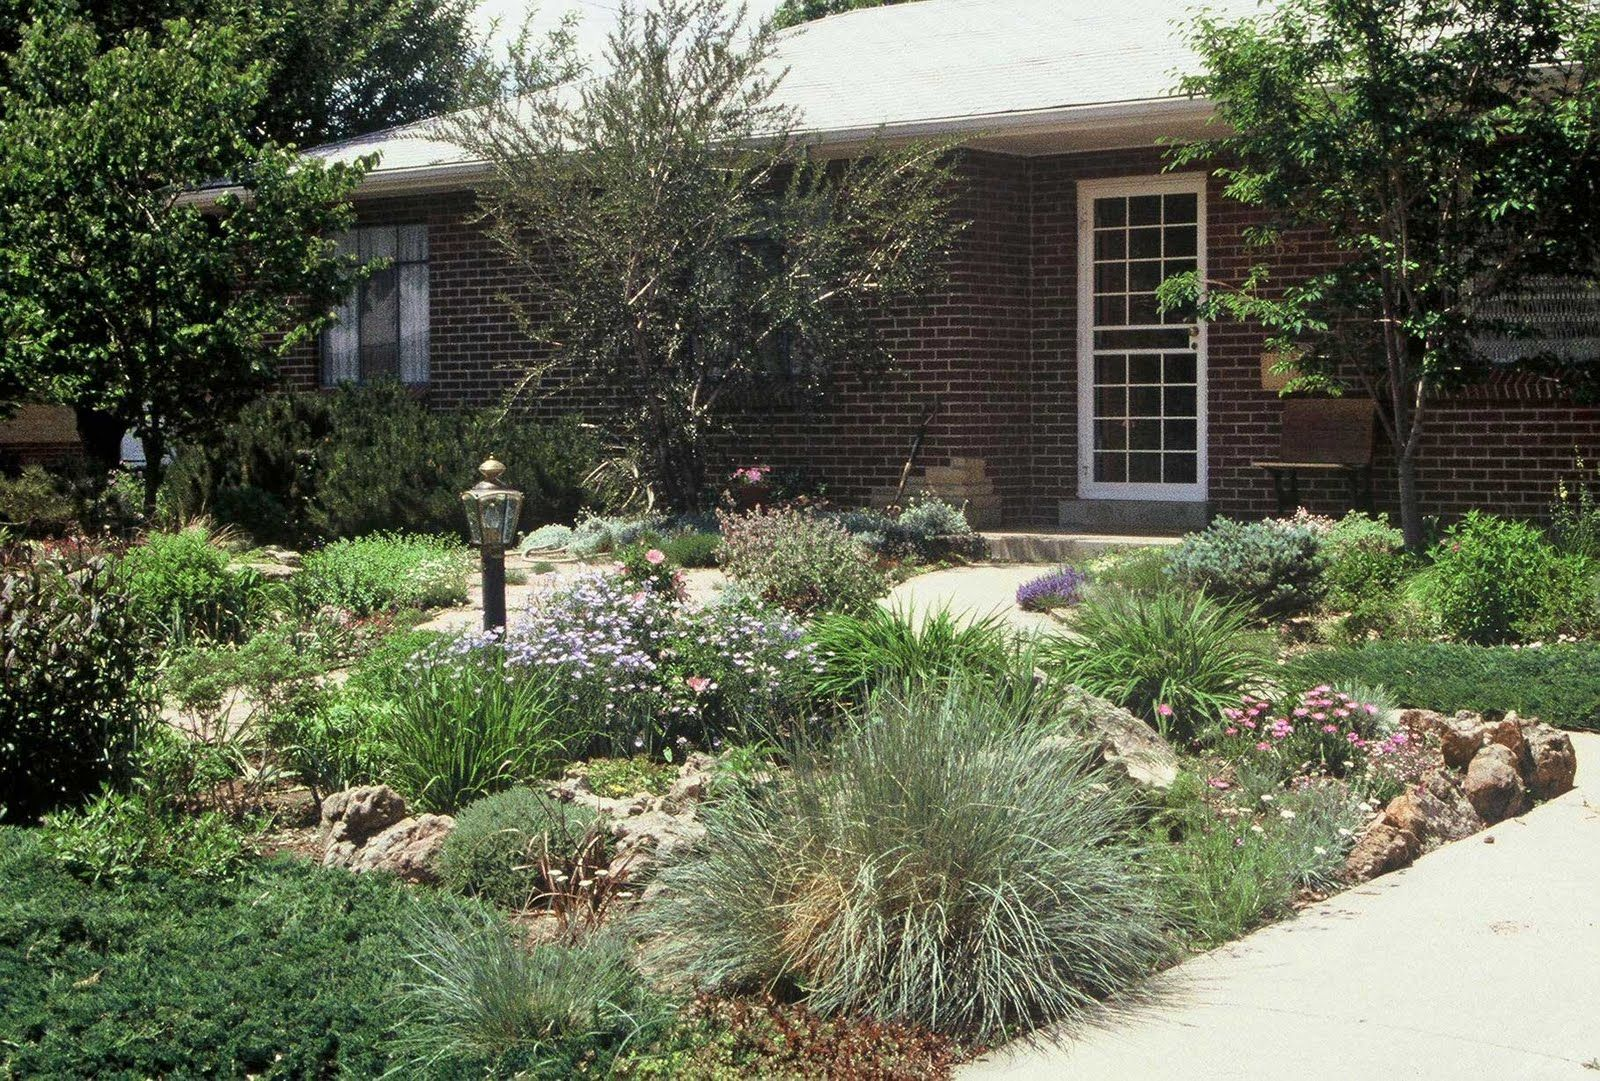 Simple landscaping ideas for front yards backyard ideas Simple landscaping for backyard